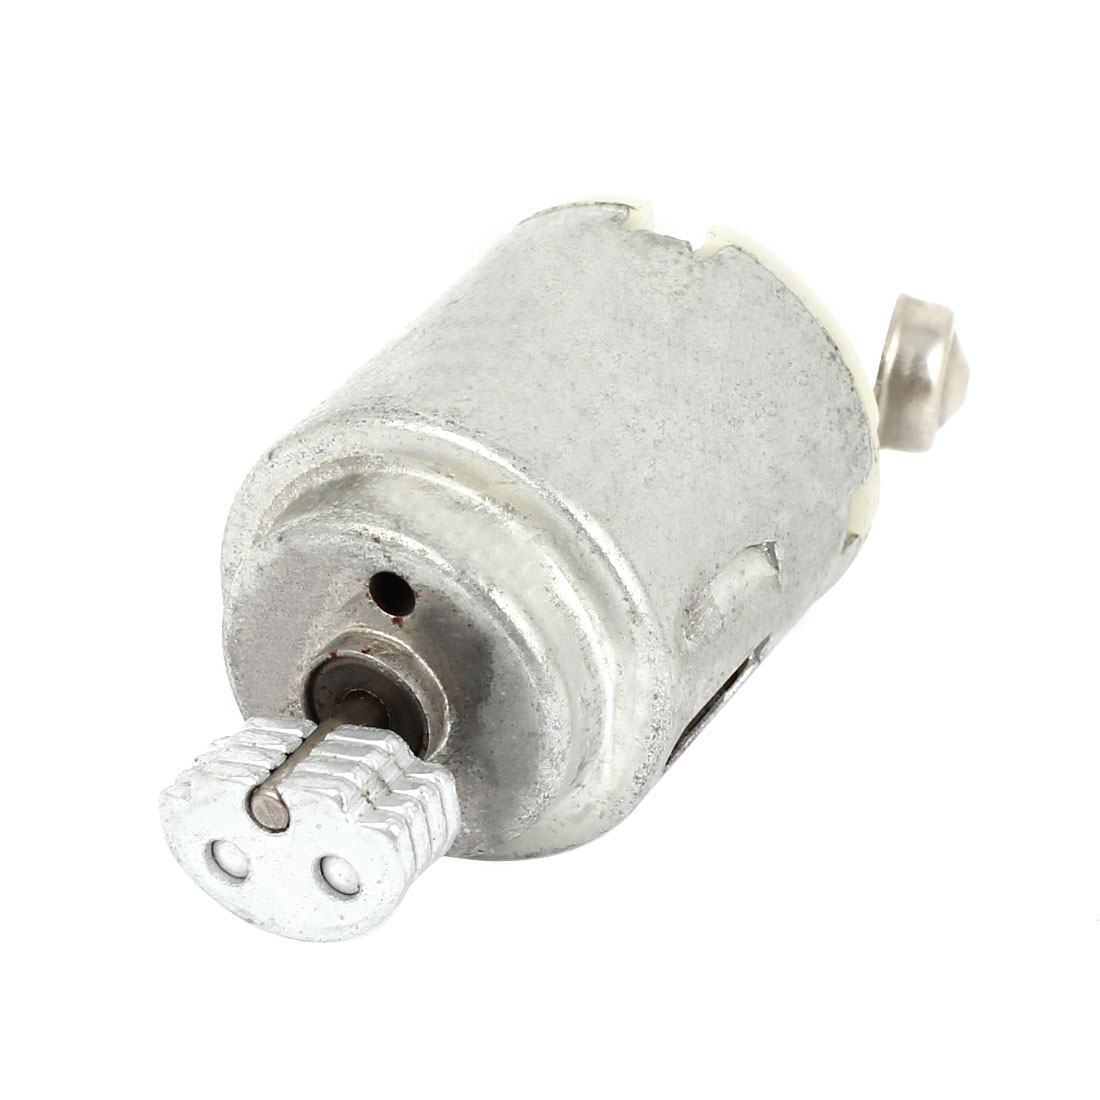 DC 1.5V-6V 17000RPM Rotary Speed Cylinder Shaped Electric Vibration Motor